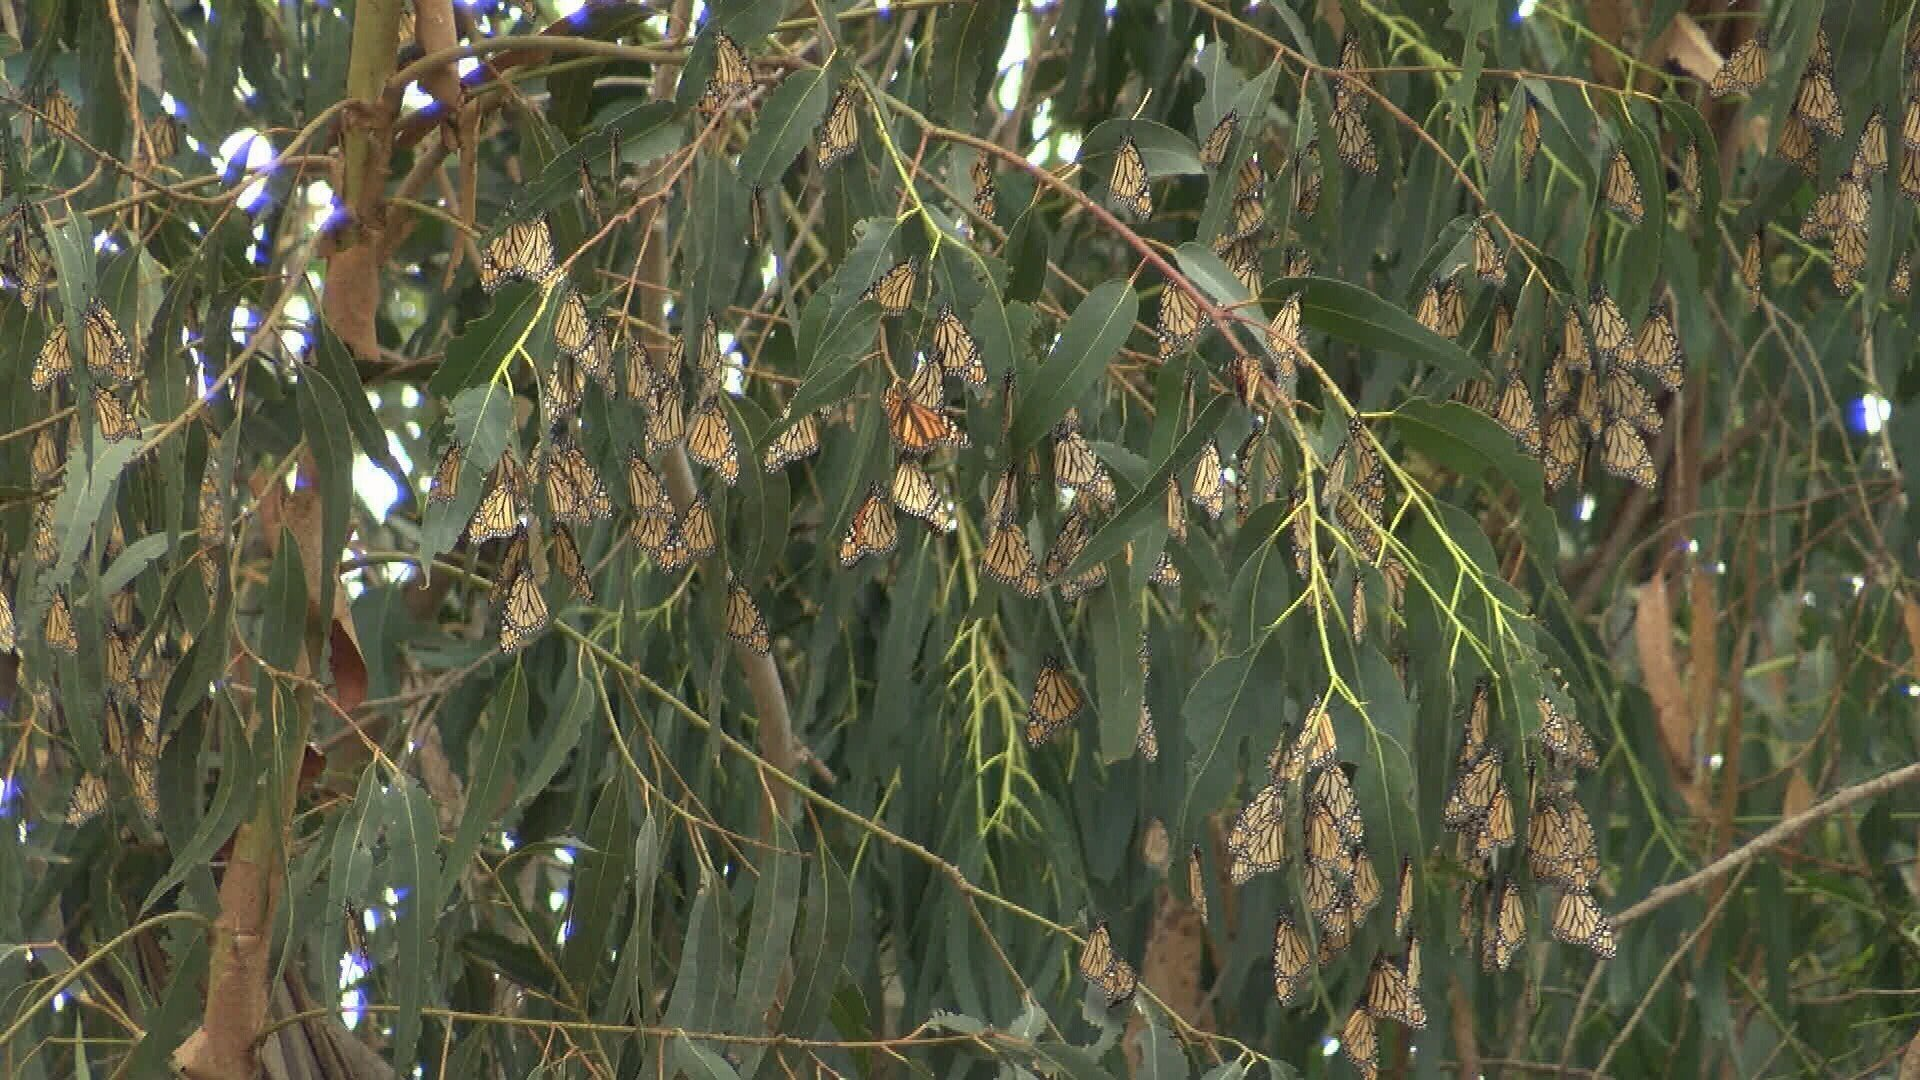 Monarch butterflies at the Pismo State Beach Monarch Butterfly Grove. (KSBY photo)